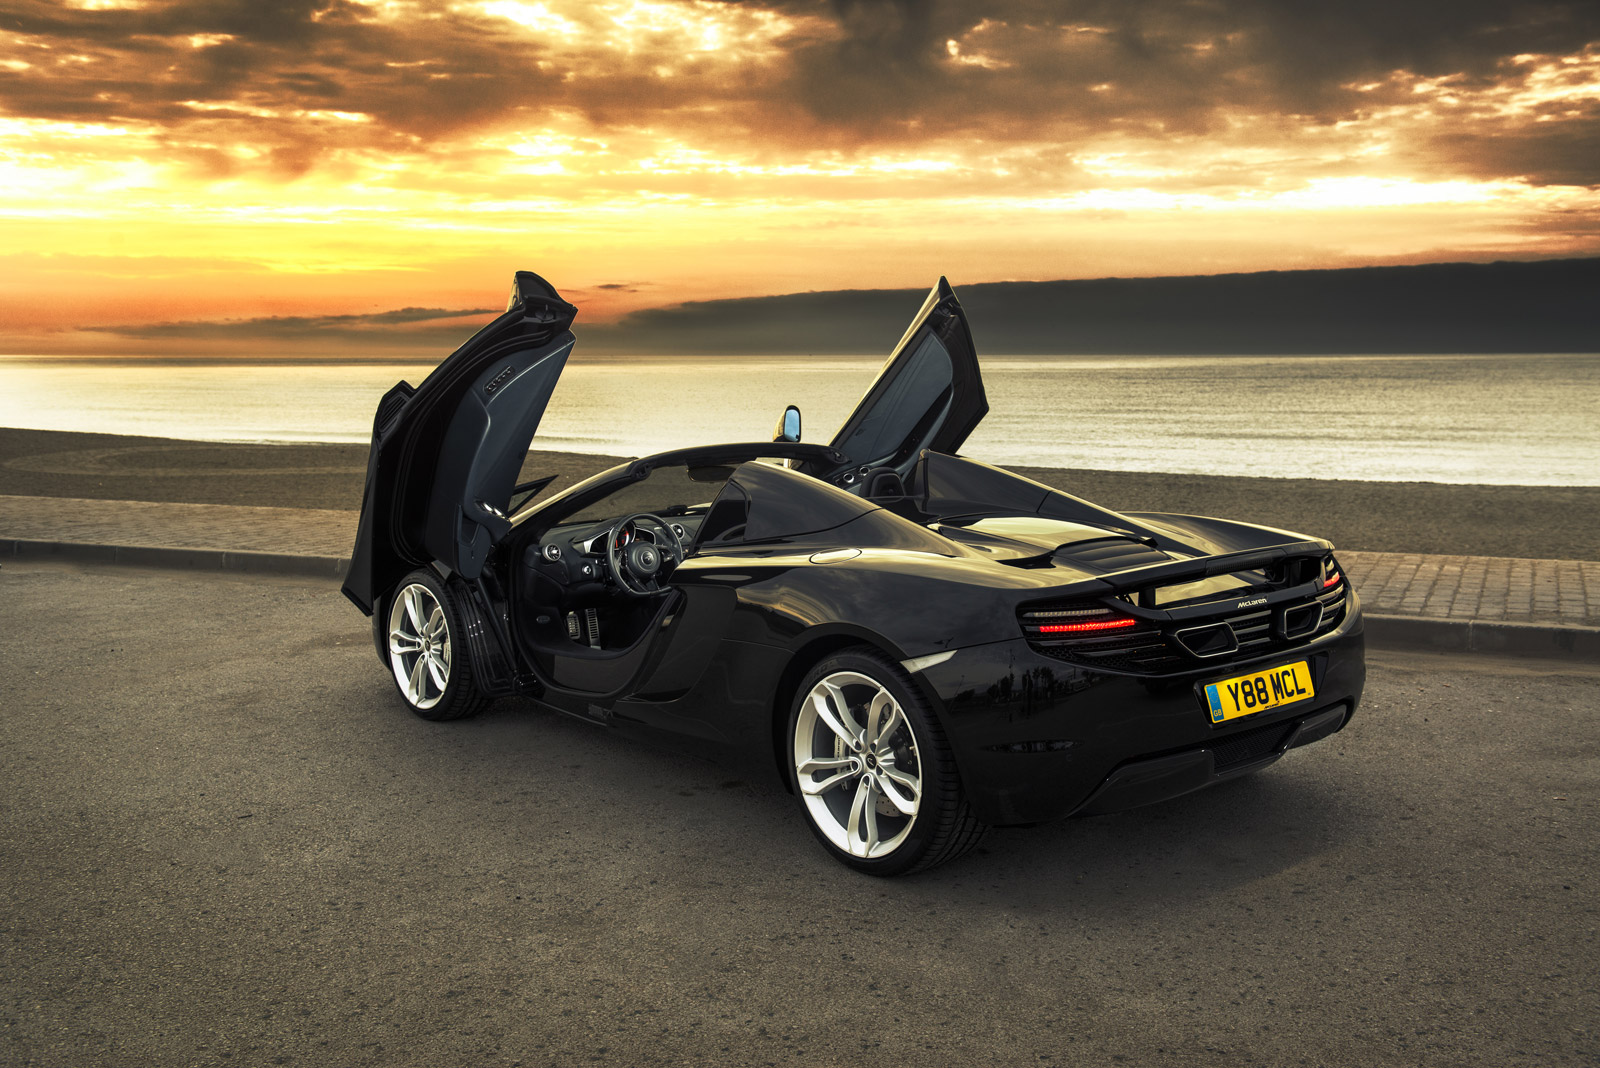 BMW Dealerships In Georgia >> McLaren Automotive To Post Loss In 2012, But Sees Profit In 2013